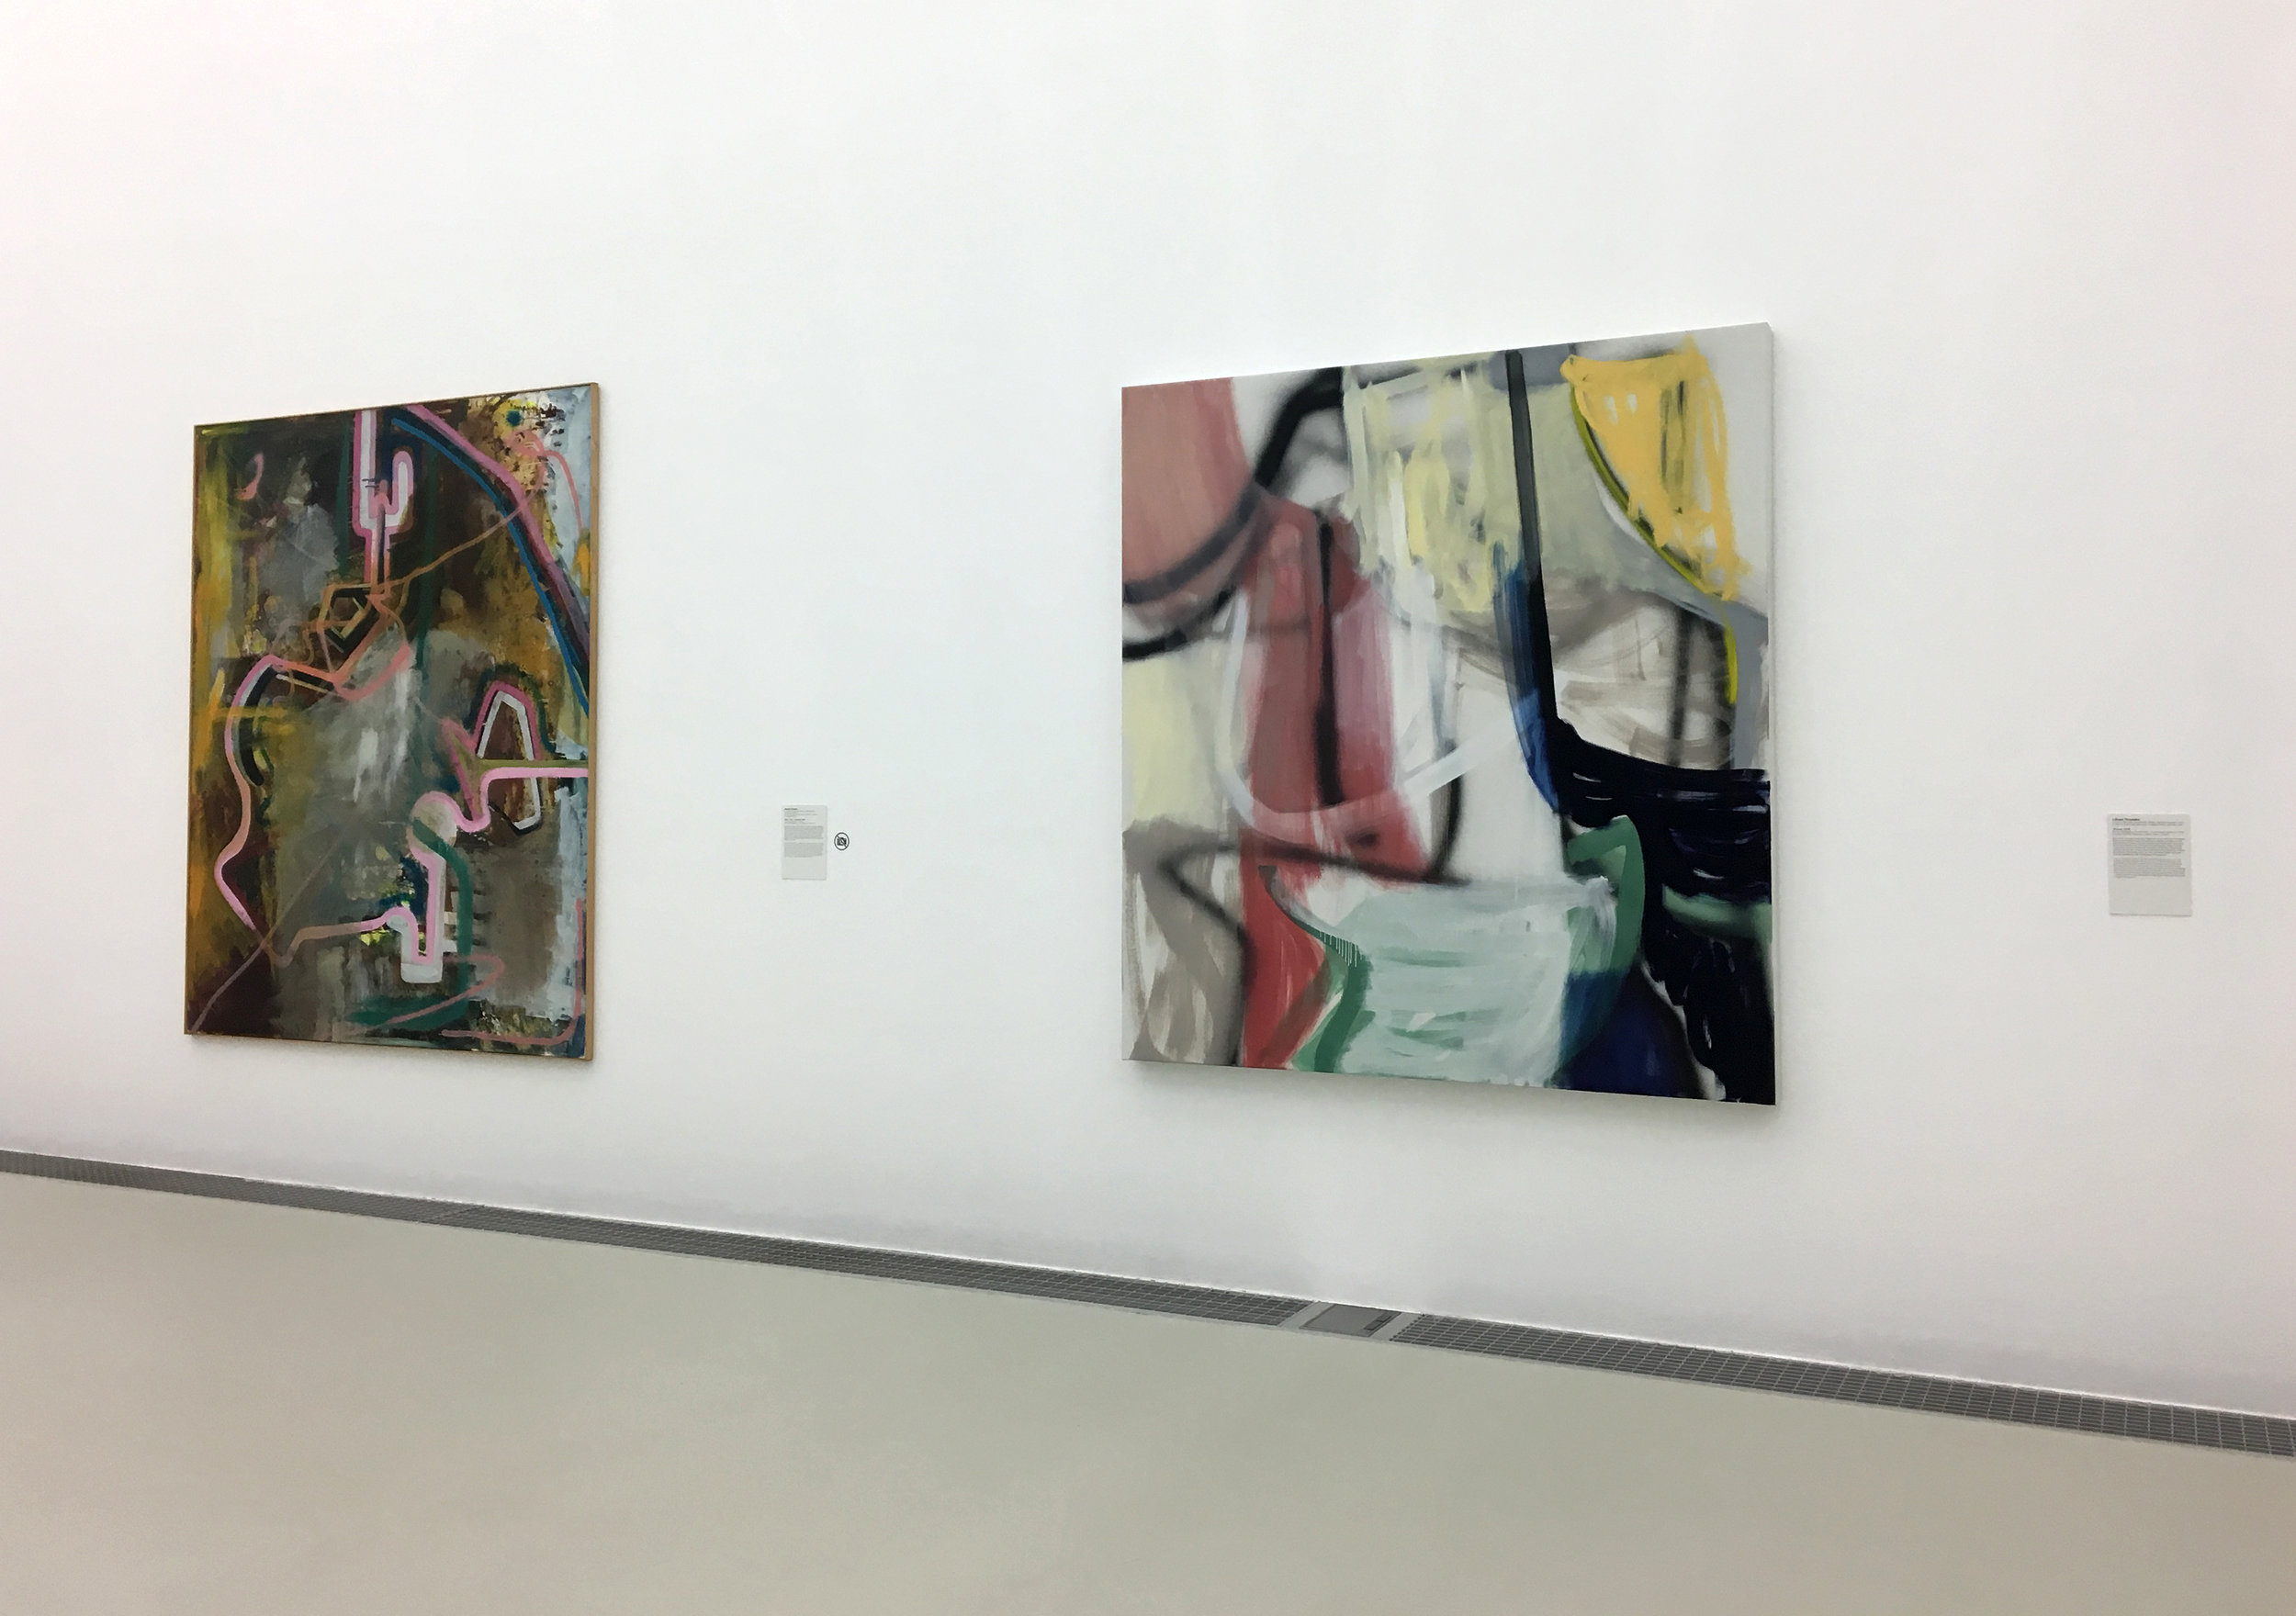 Abstract Painting Now!, Kunsthalle Krems, Austria, July-September 2017